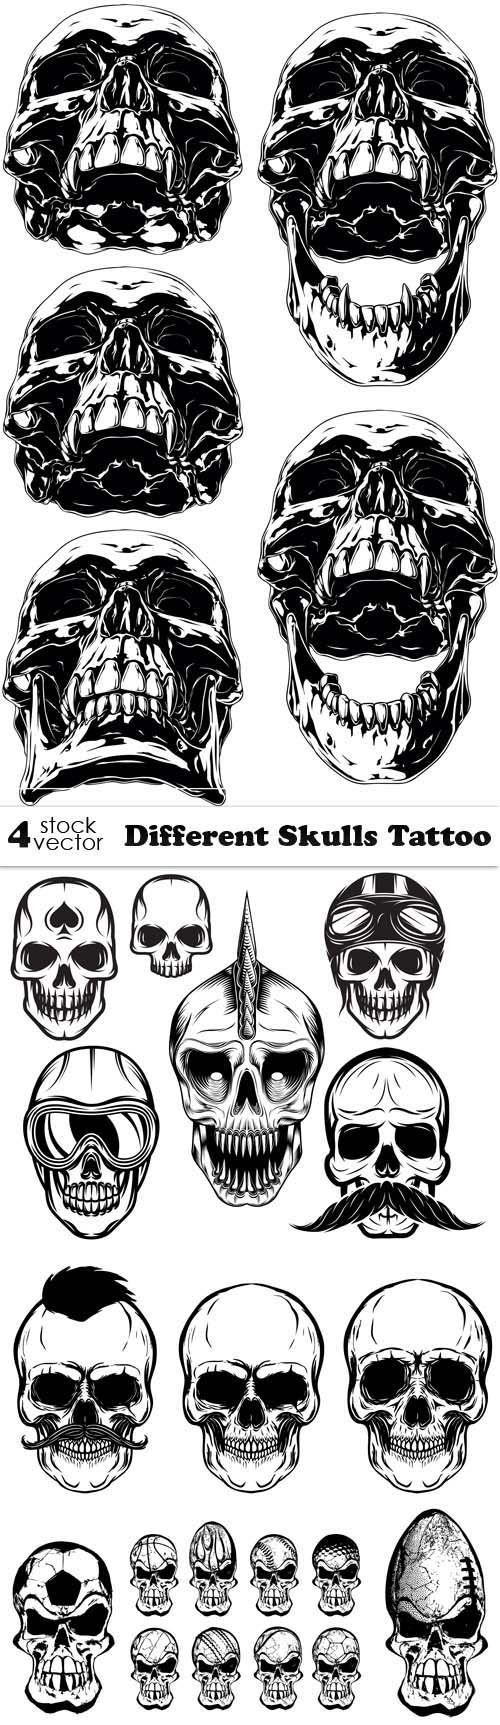 Vectors - Different Skulls Tattoo